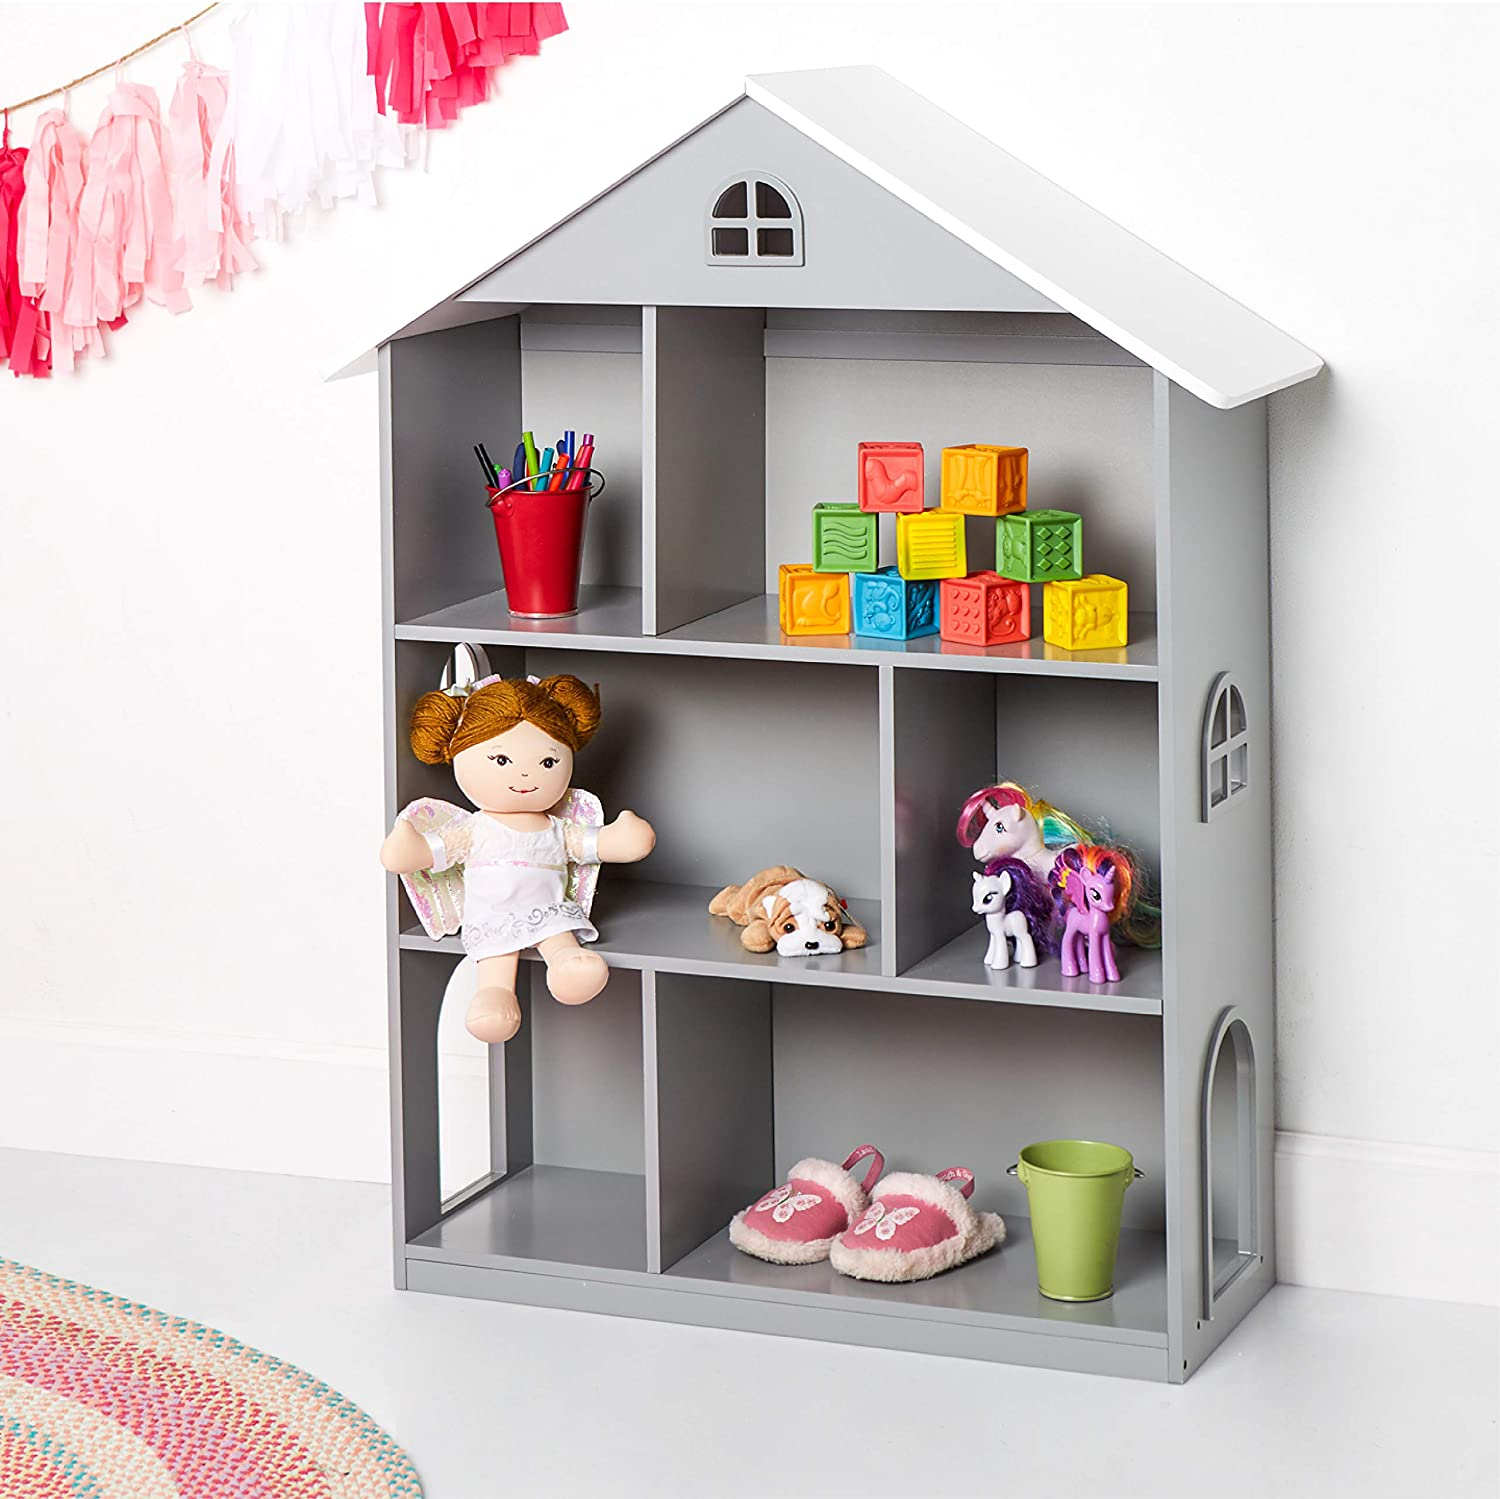 Wildkin Kids Wooden Dollhouse Bookcase for Girls, Measures 42 x 12 x 33 Inches, Dollhouse Bookshelf Keep Toys, Games, Books, and Art Supplies Organized, Ideal for Bedroom or Playroom, BPA-Free (Grey)